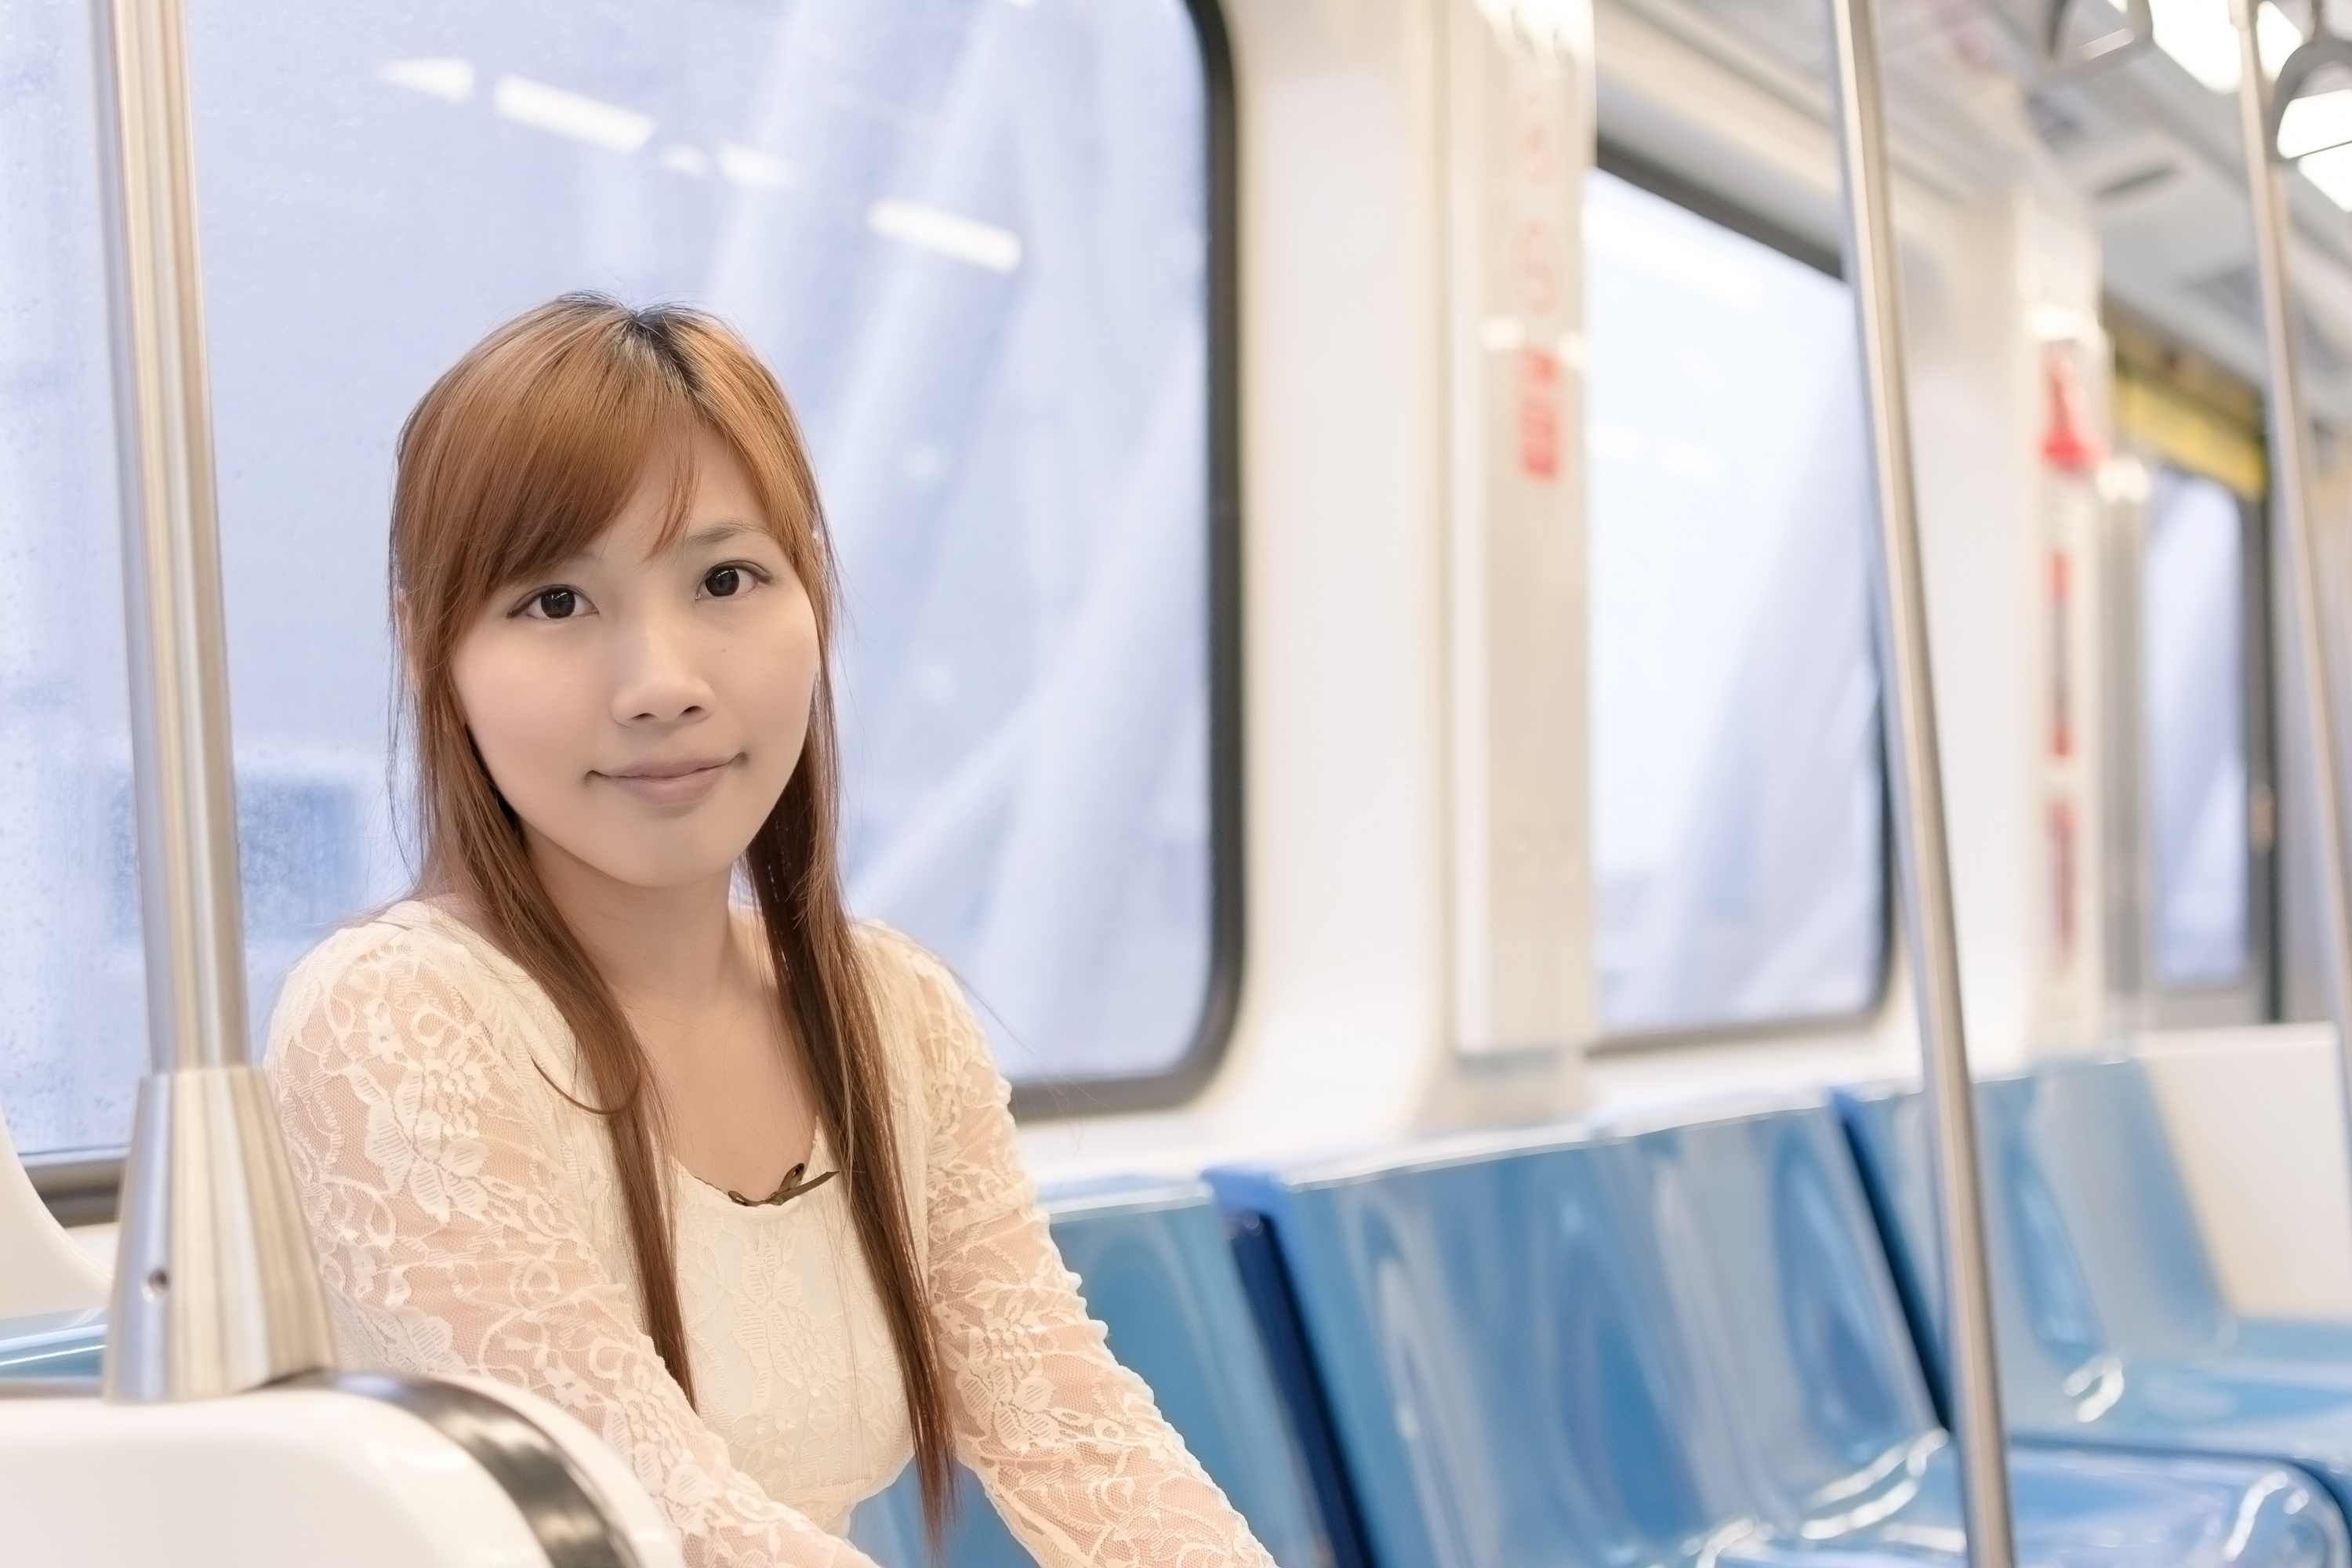 Asian beauty in MRT carriages, Taipei, Taiwan.